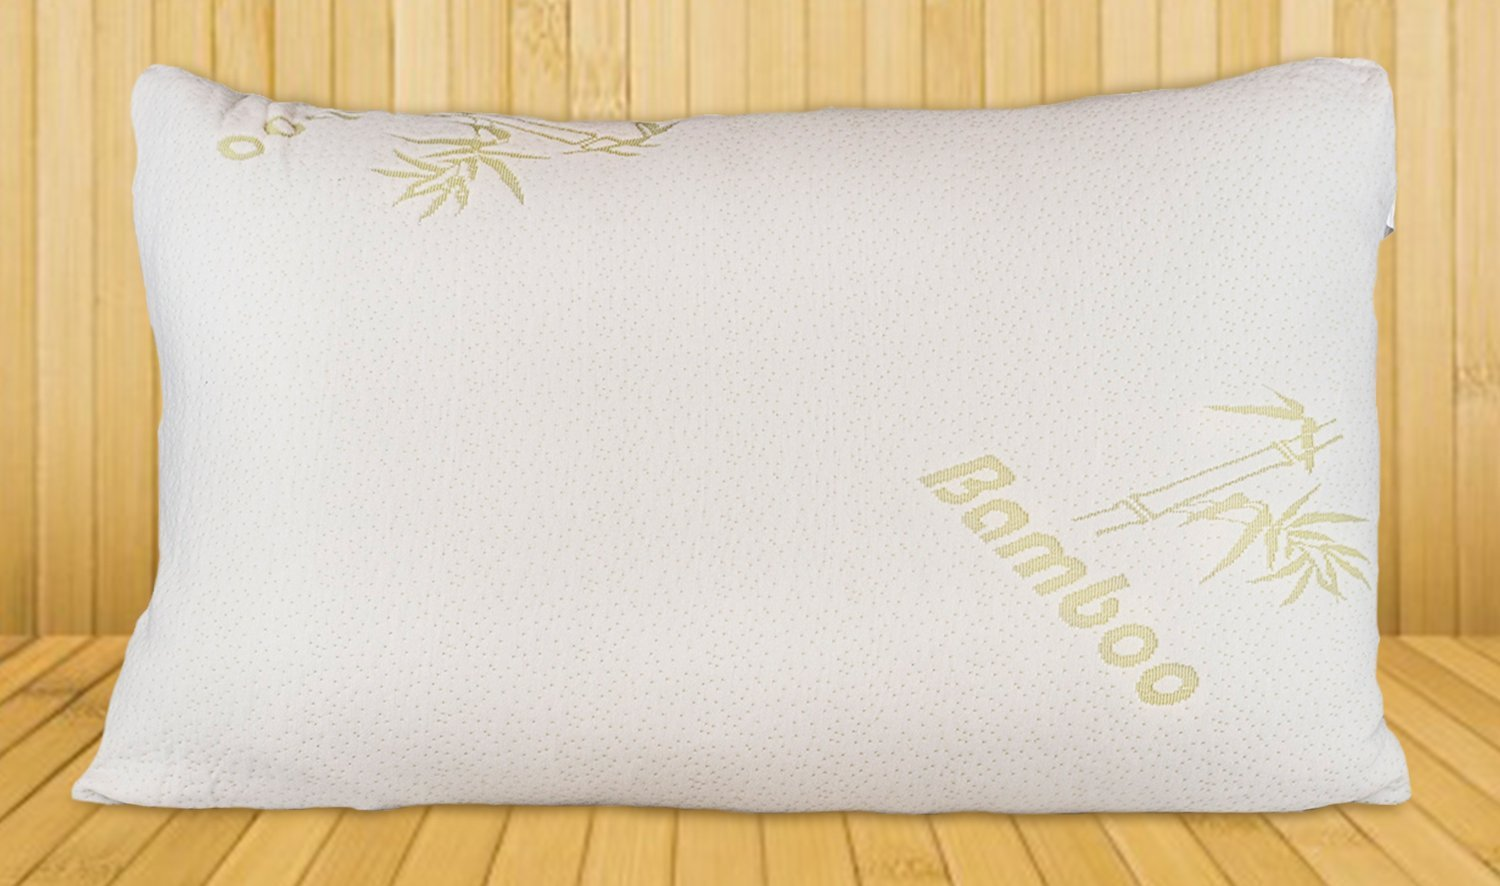 Top 5 Best Bamboo Pillow Reviews — Which One to Pick in 2020?